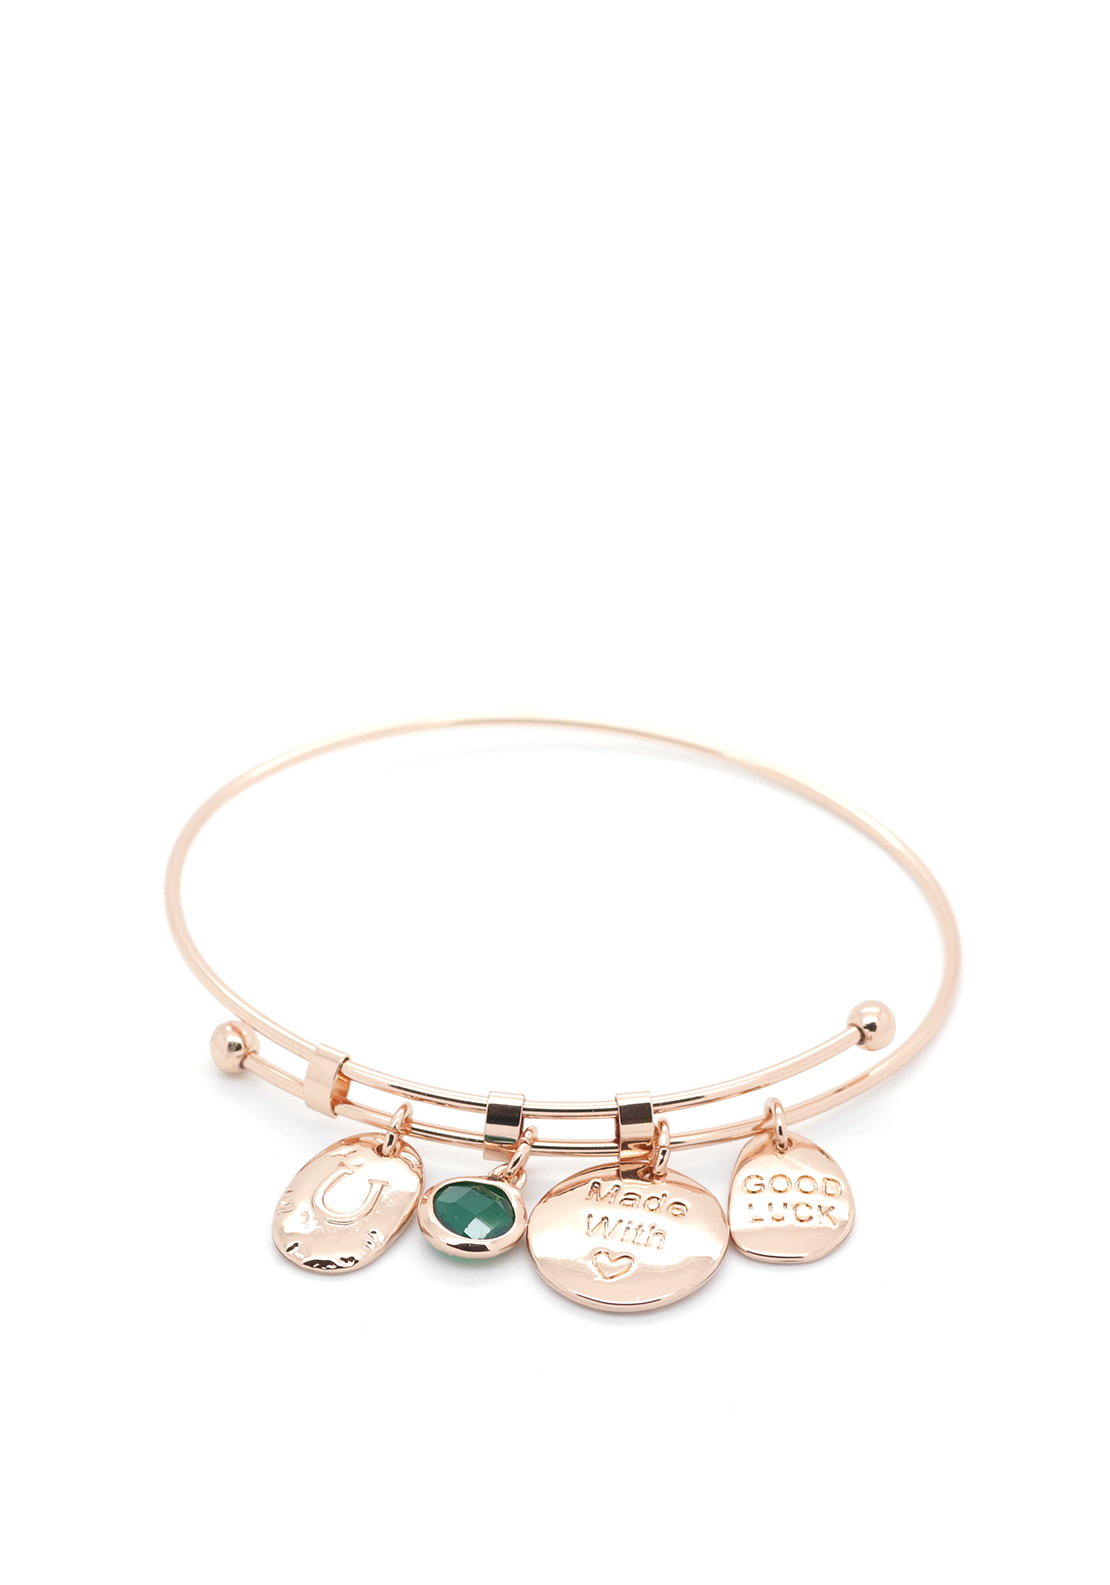 Absolute Jewellery Good Luck Bangle, Rose Gold